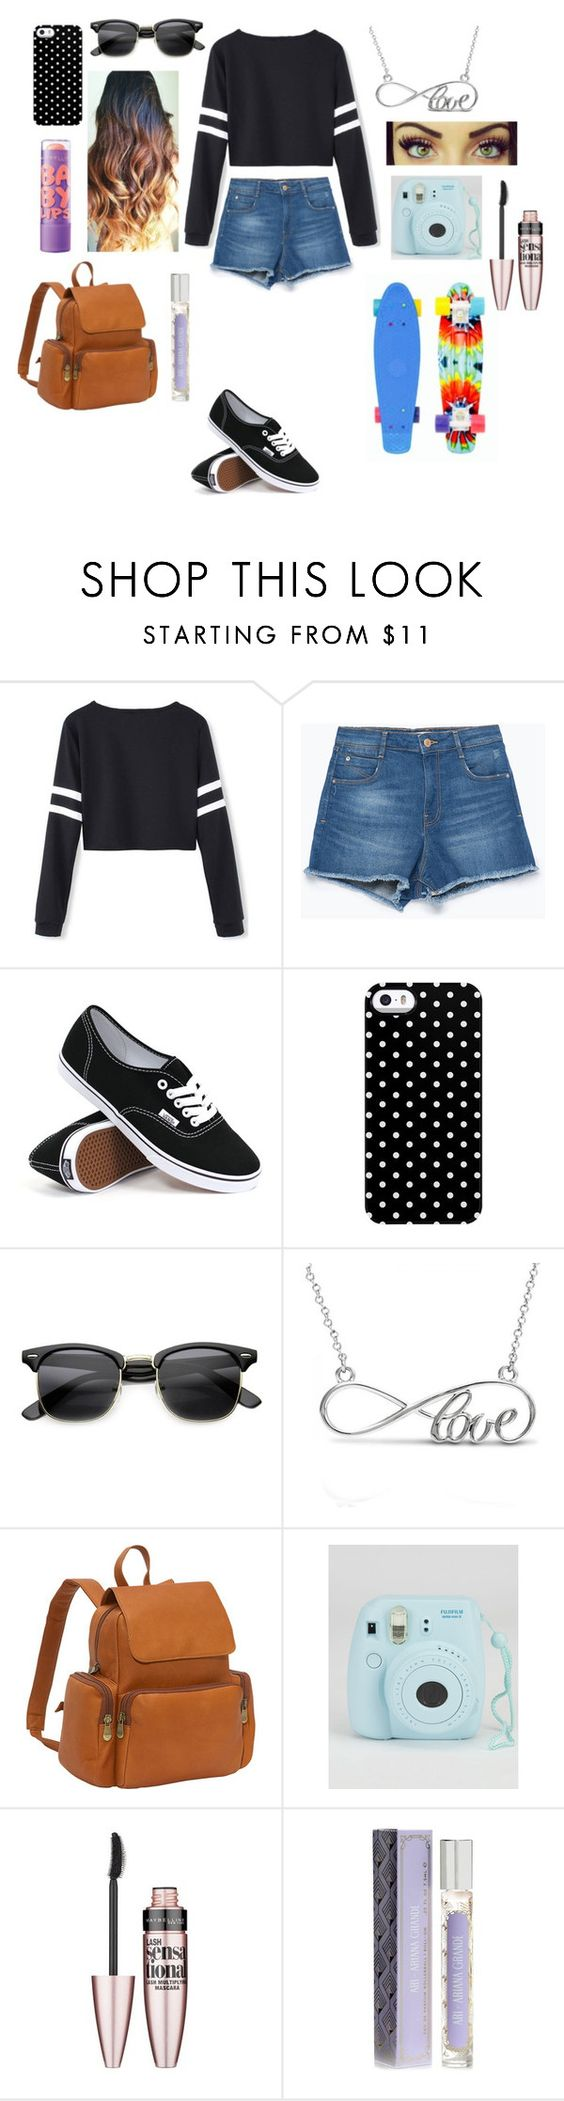 """""""Outfit #123"""" by prayonalexis ❤ liked on Polyvore featuring Zara, Vans, Uncommon, Allurez, Maybelline, Le Donne, women's clothing, women's fashion, women and female"""